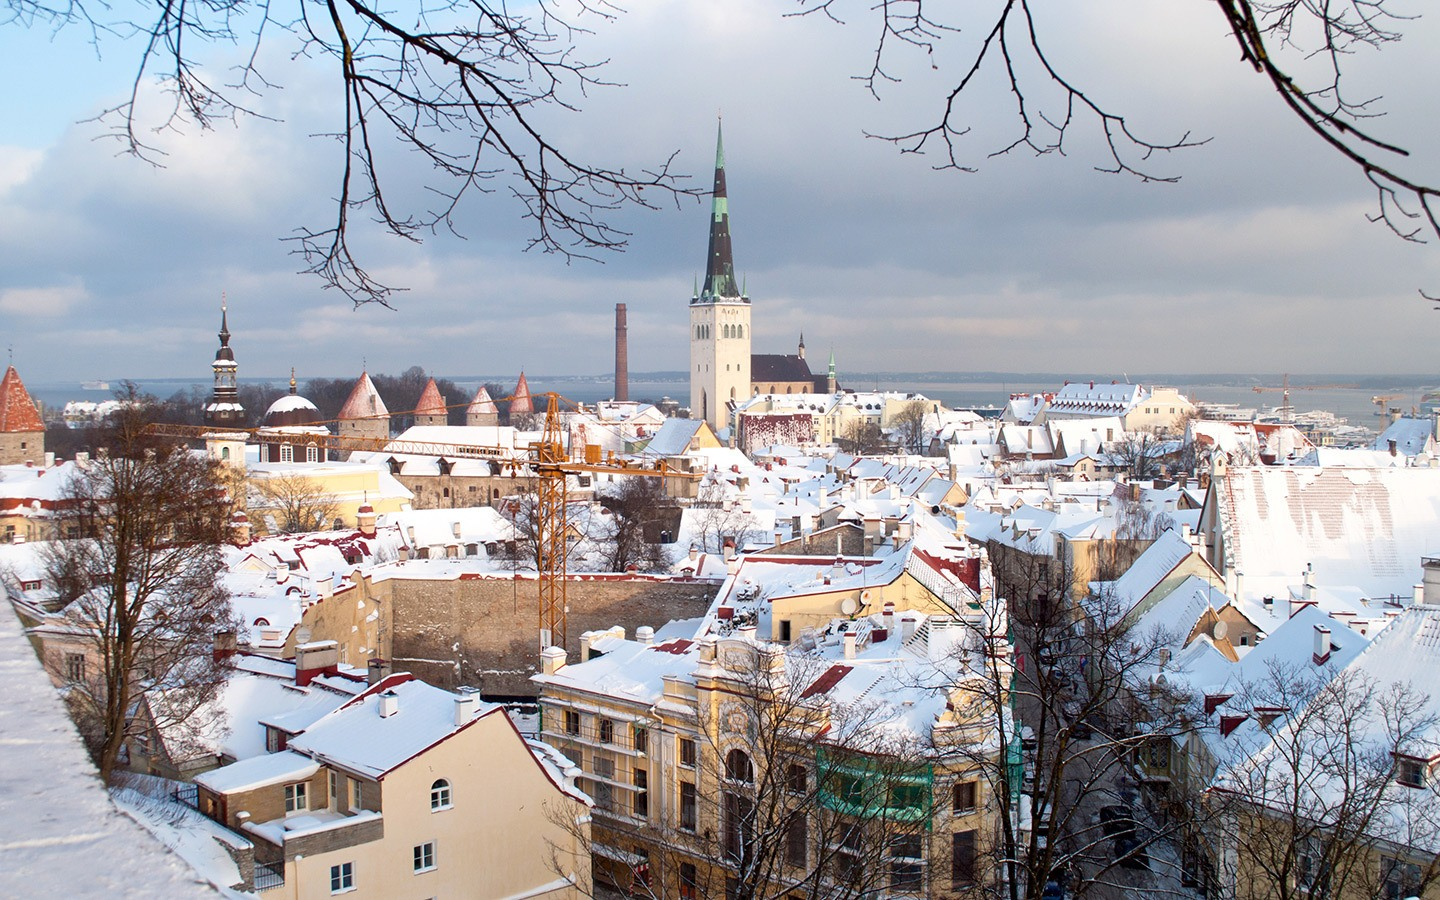 Kohtuotsa viewpoint in Tallinn in winter